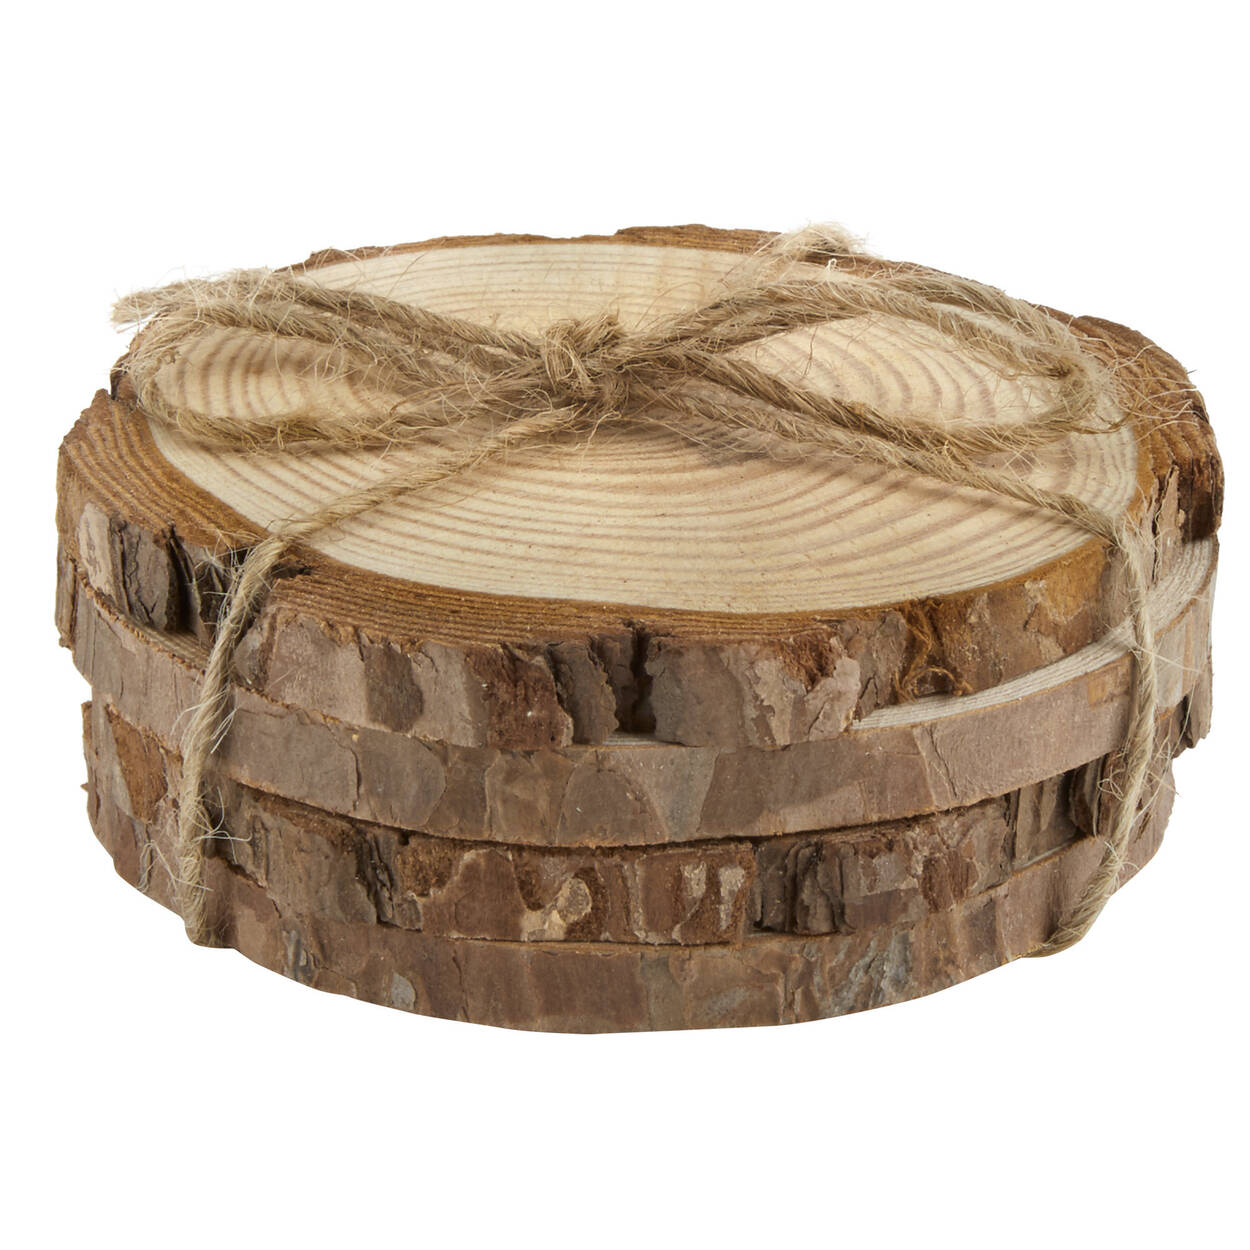 Set of 4 Wooden Disk Coasters